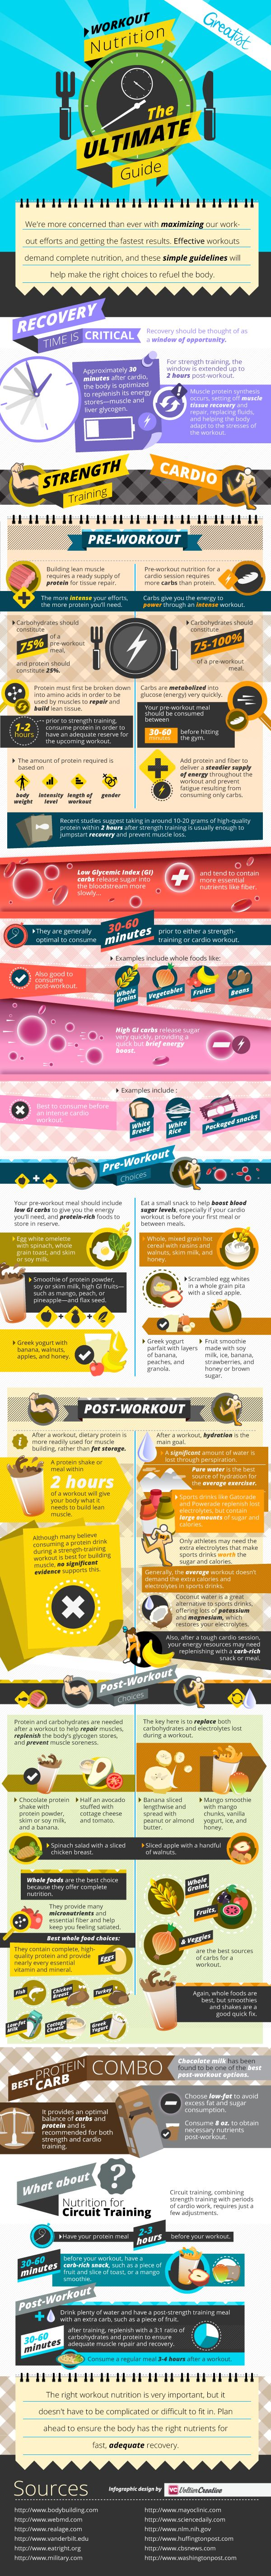 Planning your meal - workout